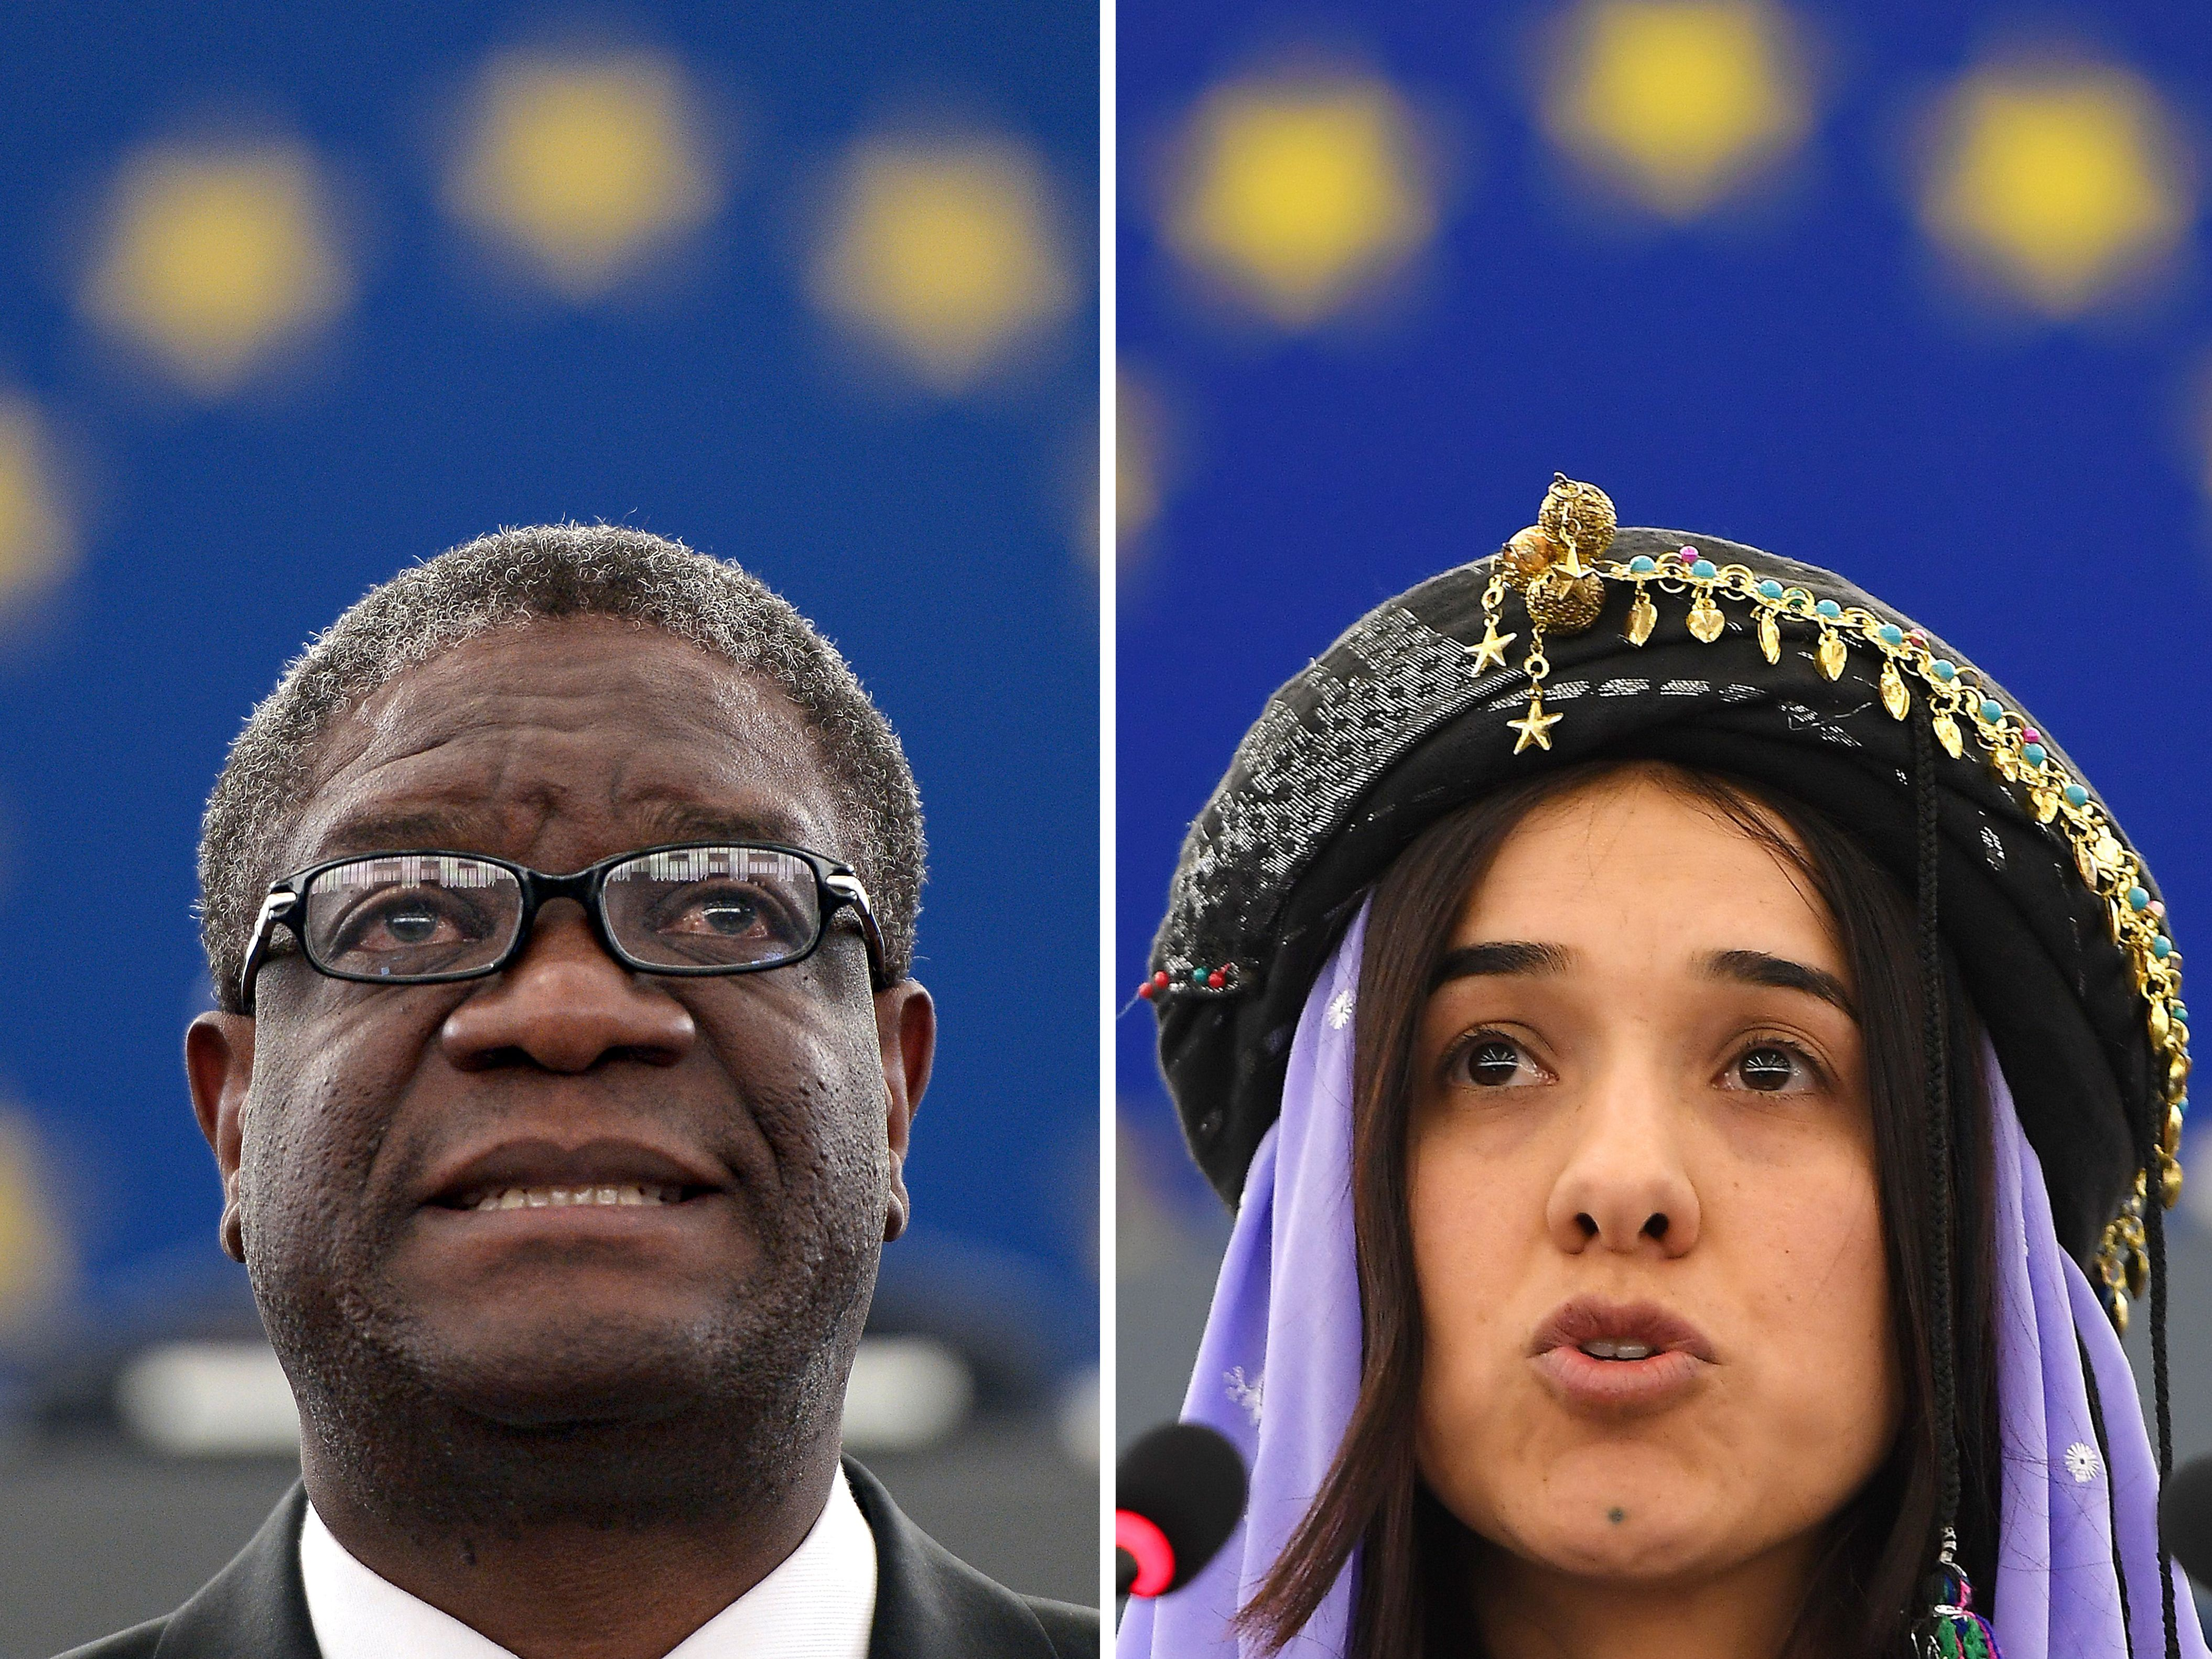 Congolese doctor Denis Mukwege on November 26, 2014 at the European Parliament in Strasbourg and Nadia Murad, public advocate for the Yazidi community in Iraq and survivor of sexual enslavement by the Islamic State jihadists, on December 13, 2016 at the European parliament in Strasbourg.